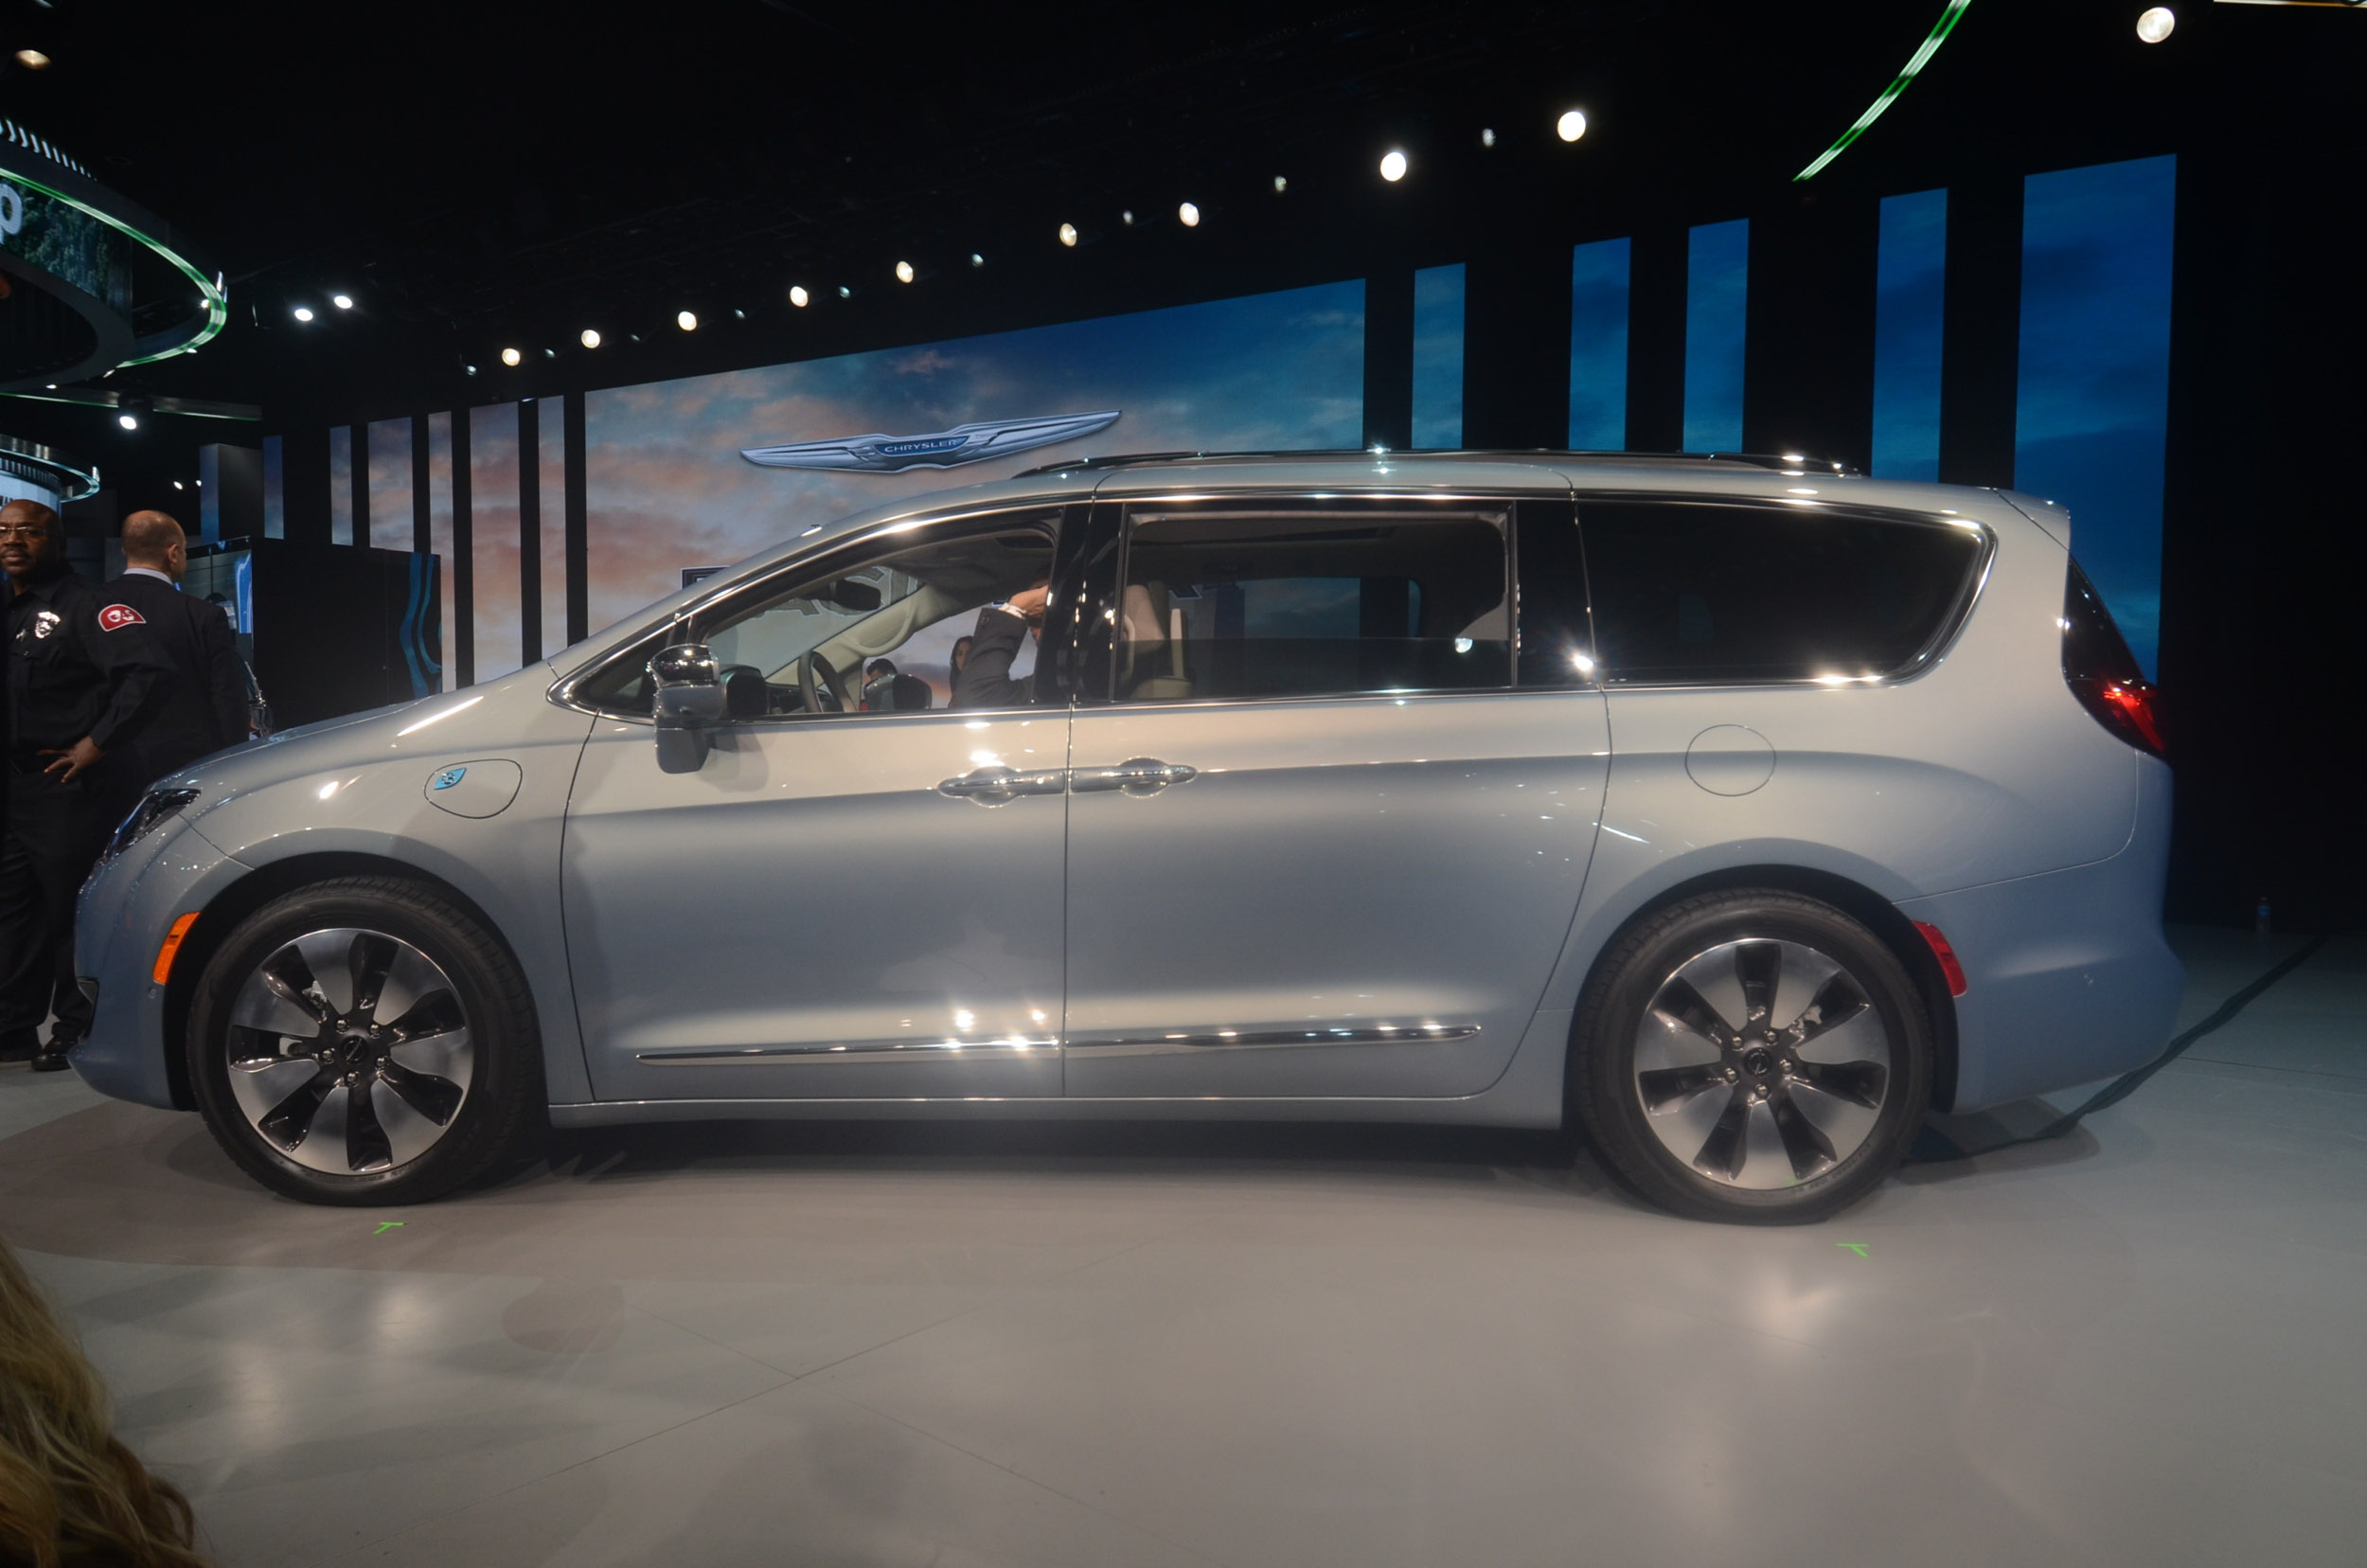 Unique 2017 Chrysler Pacifica Live Photos 2016 NAIAS  CF Blog